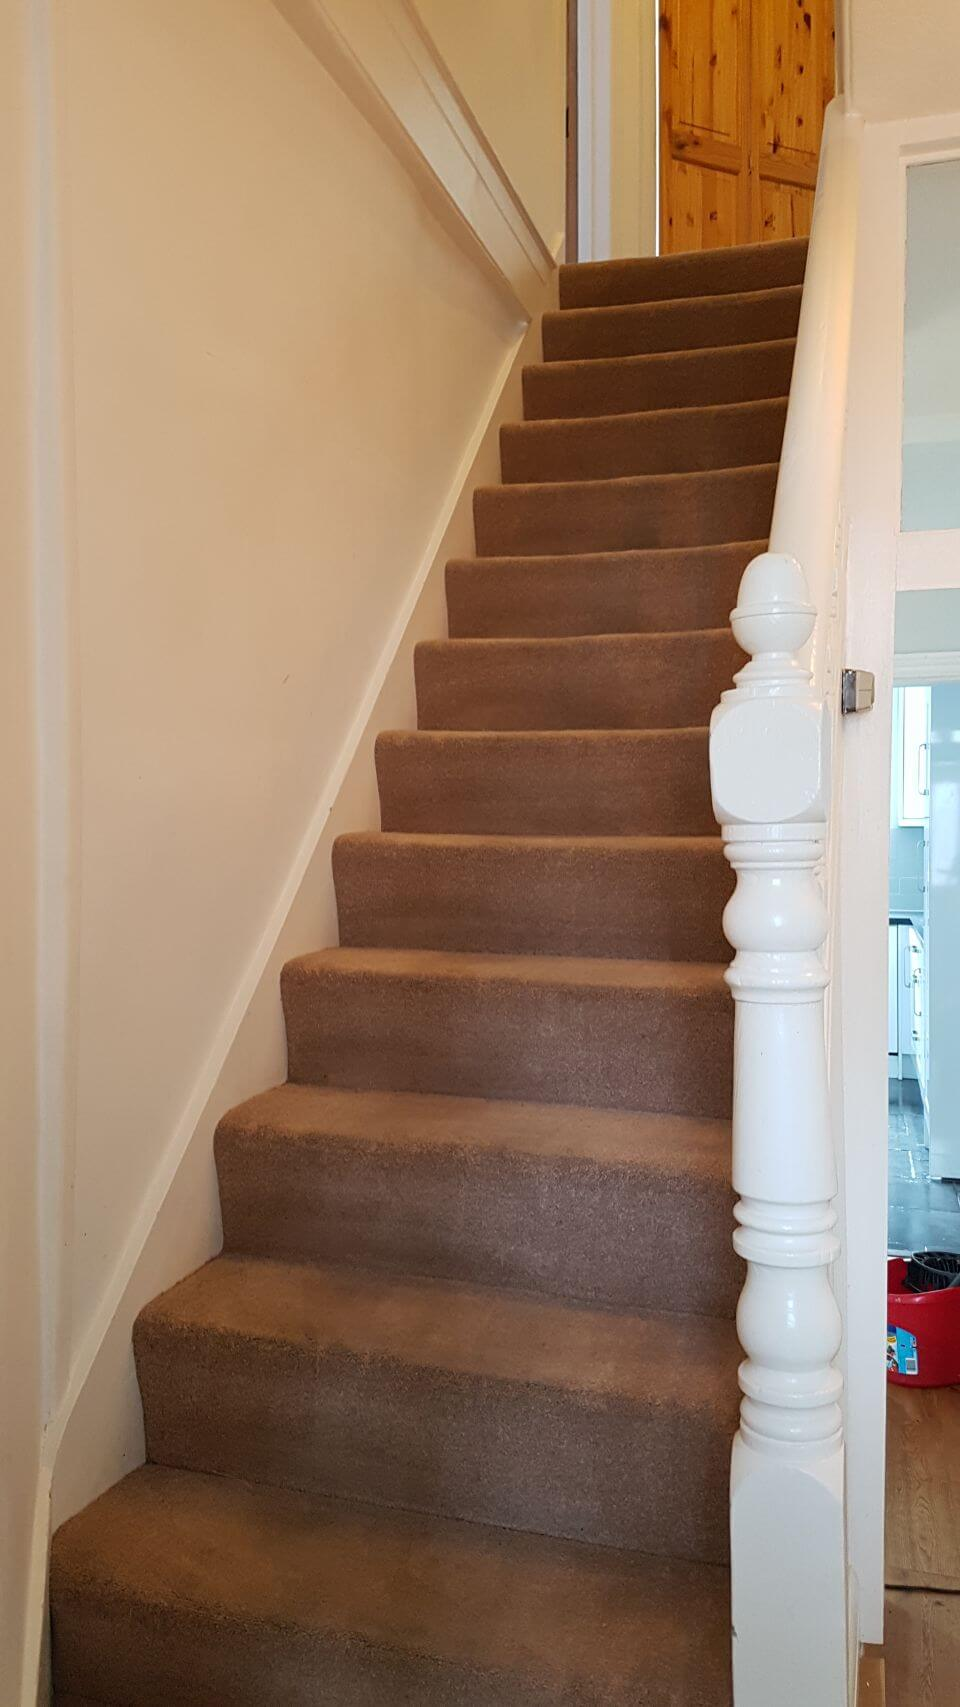 N19 carpet cleaning Archway